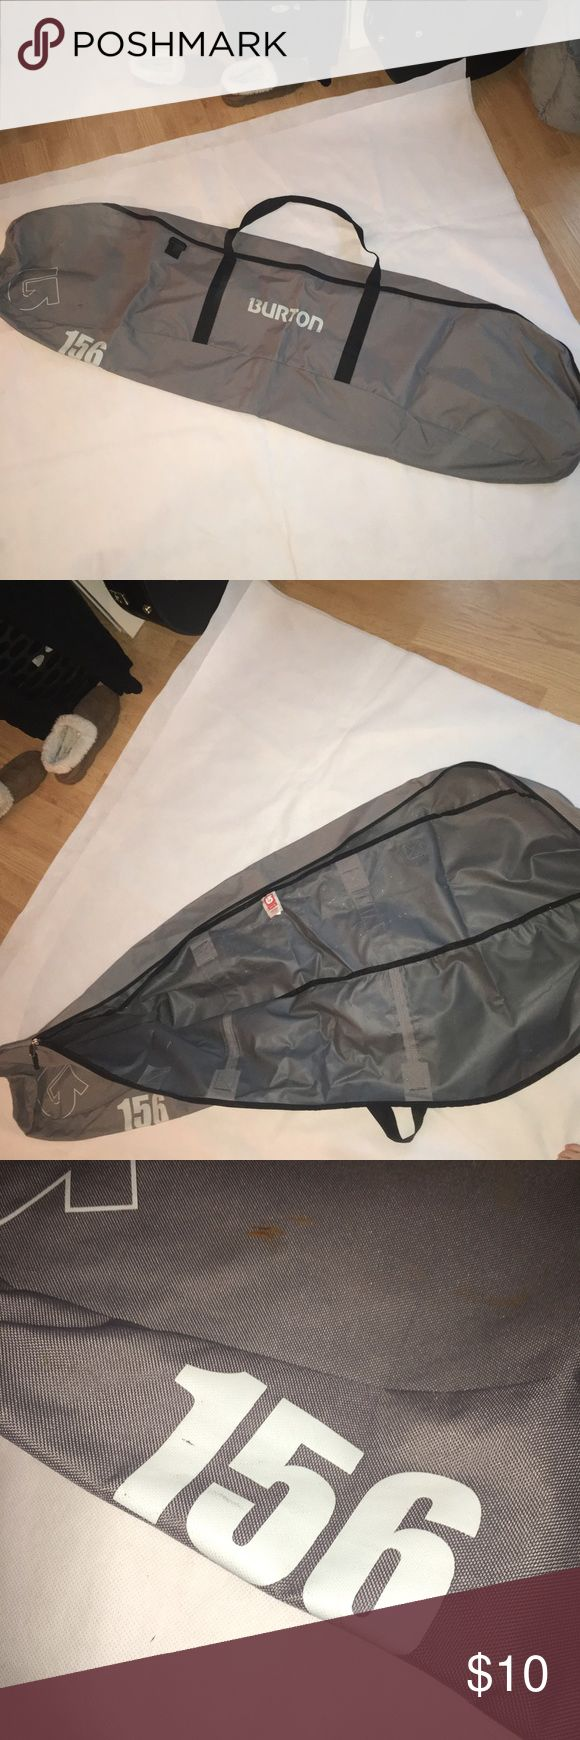 Burton snowboard bag Burton snowboard bag. Couple stains. No strap. Size 156 Burton Bags